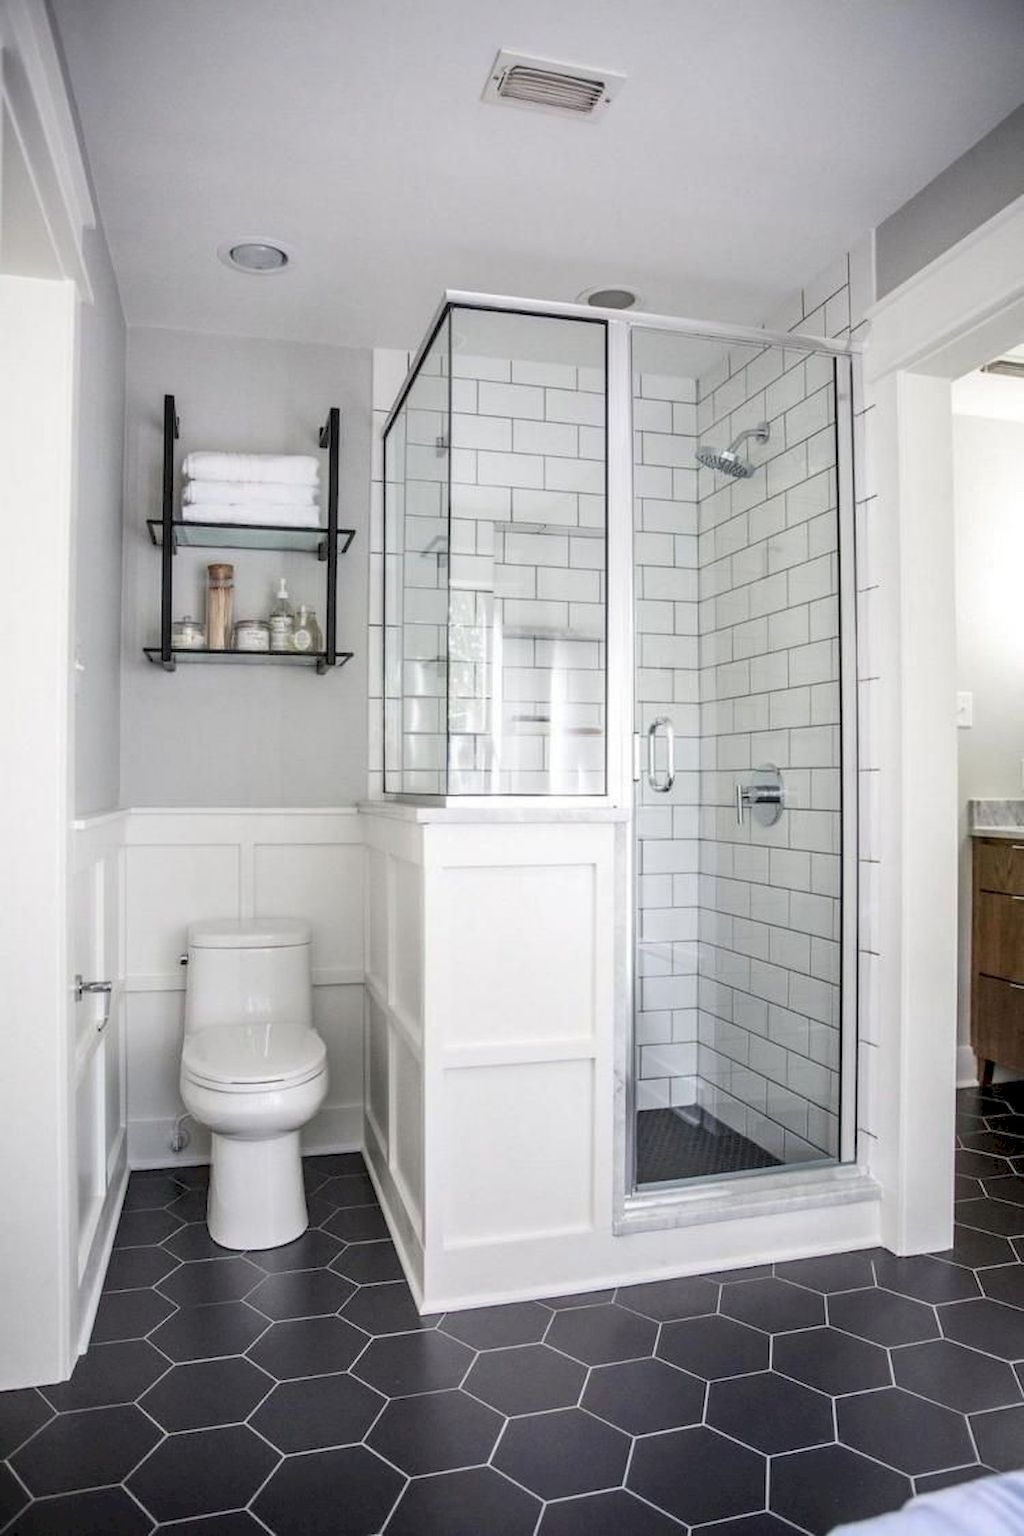 15 Best Beautiful And Small Bathroom Designs Ideas To Inspire You Bathroom Design Small Master Bathroom Renovation Small Bathroom